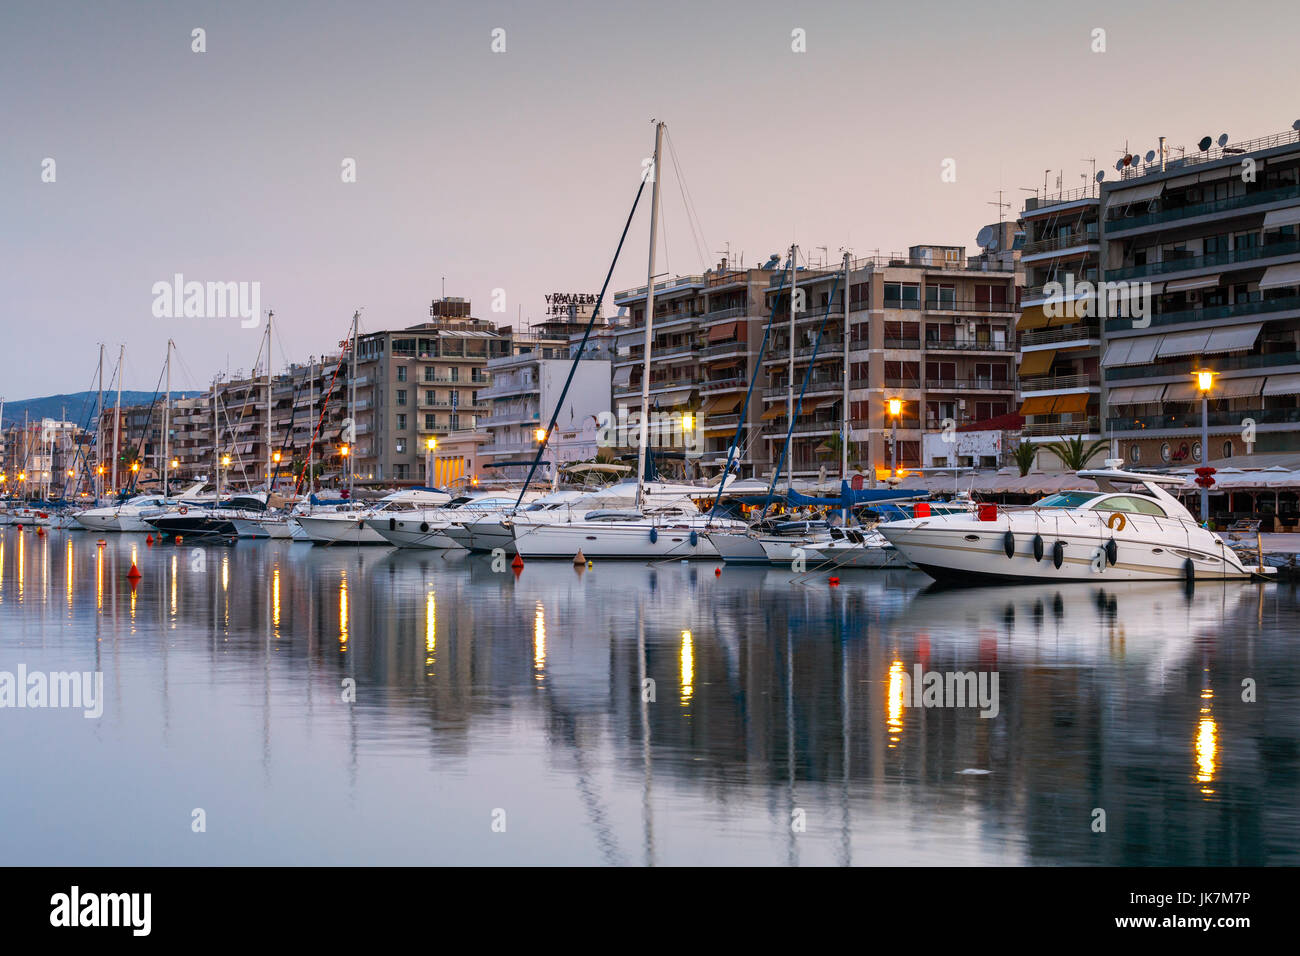 Sail boats in the harbour of Volos city as seen early in the morning. - Stock Image